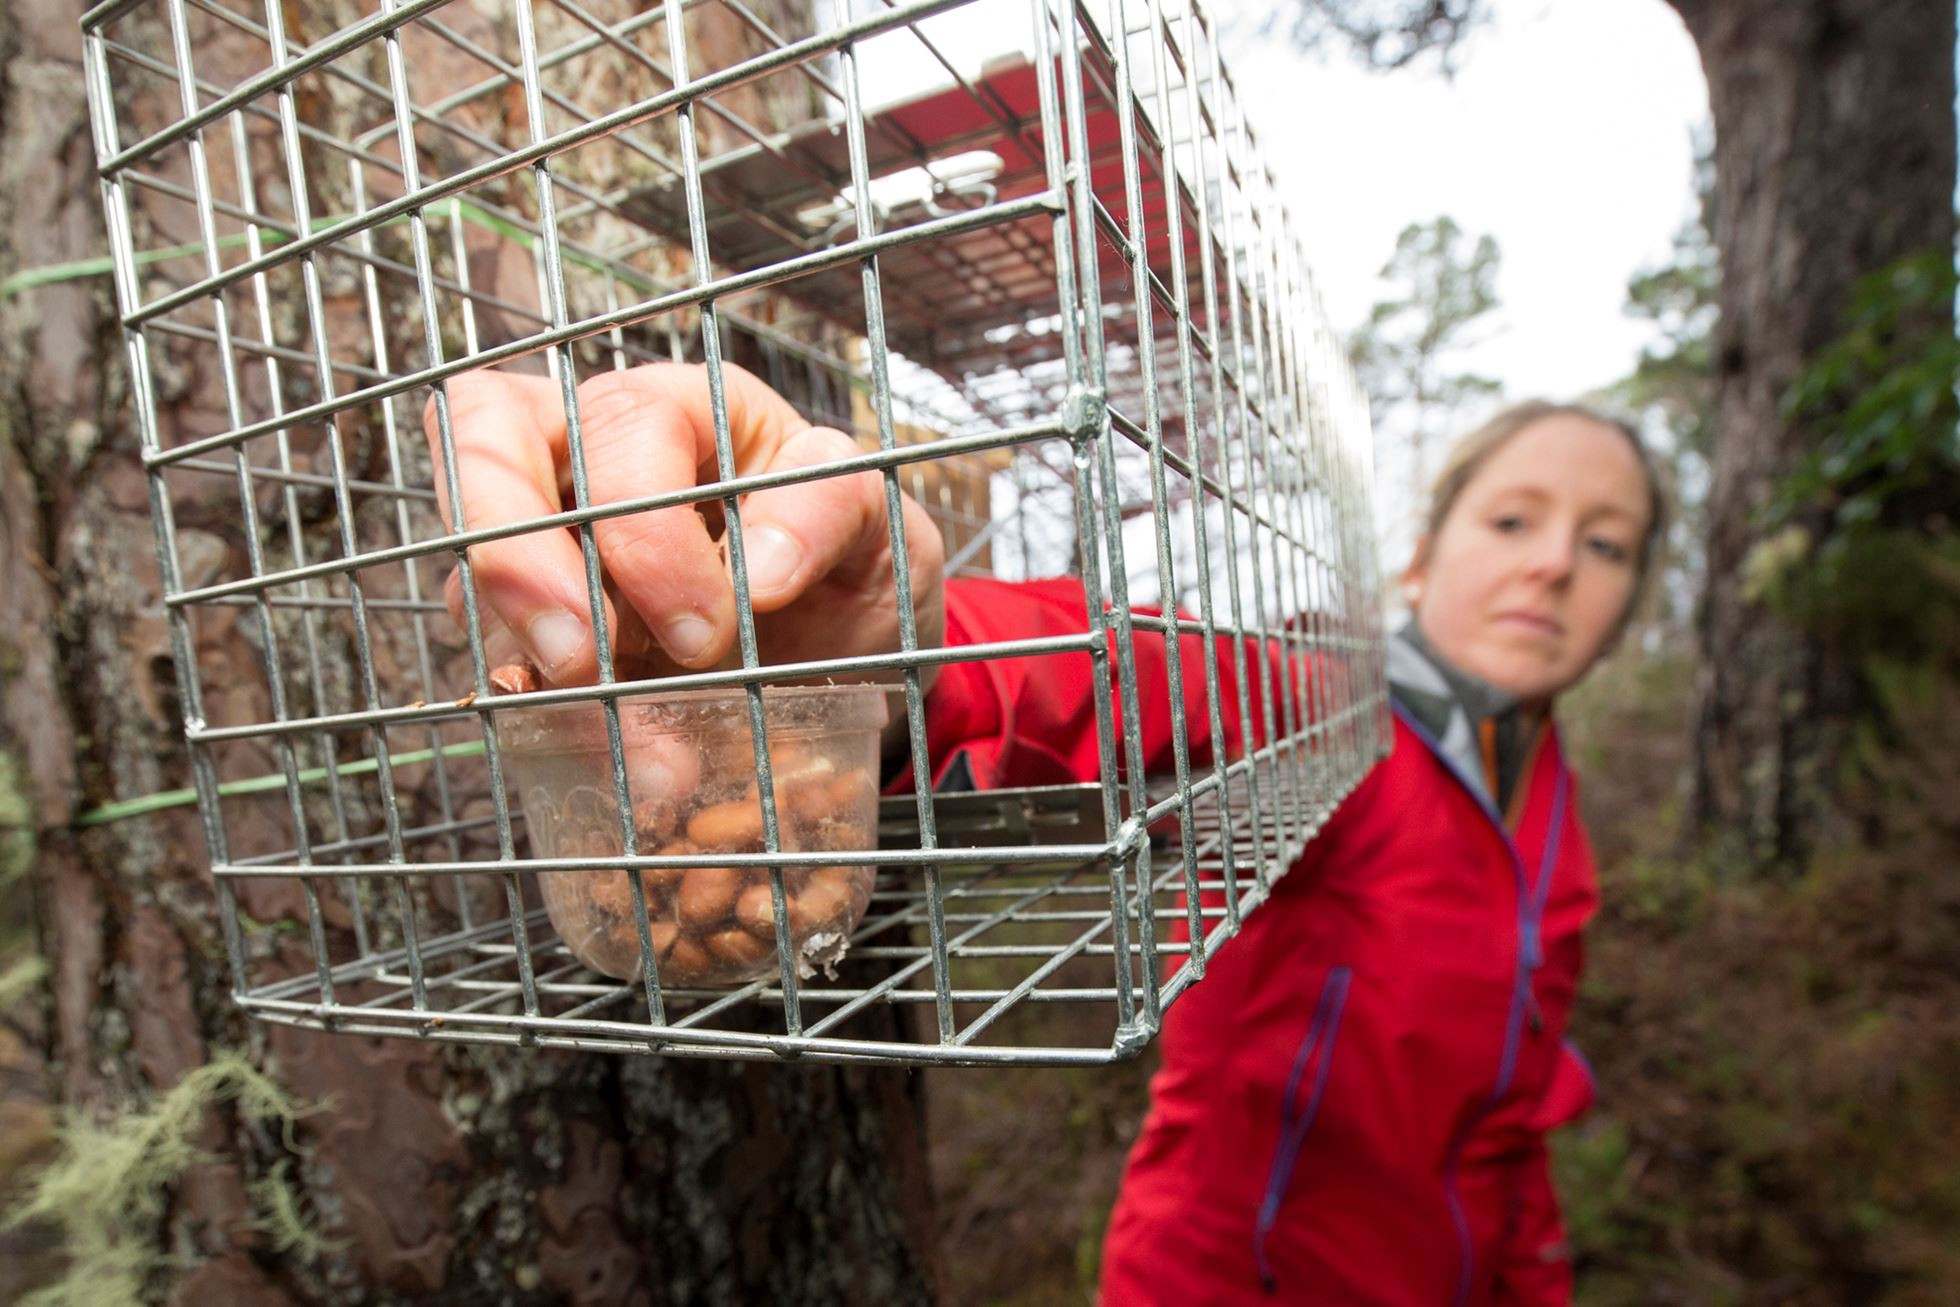 Cage traps are baited weeks before capture to acclimatise squirrels.